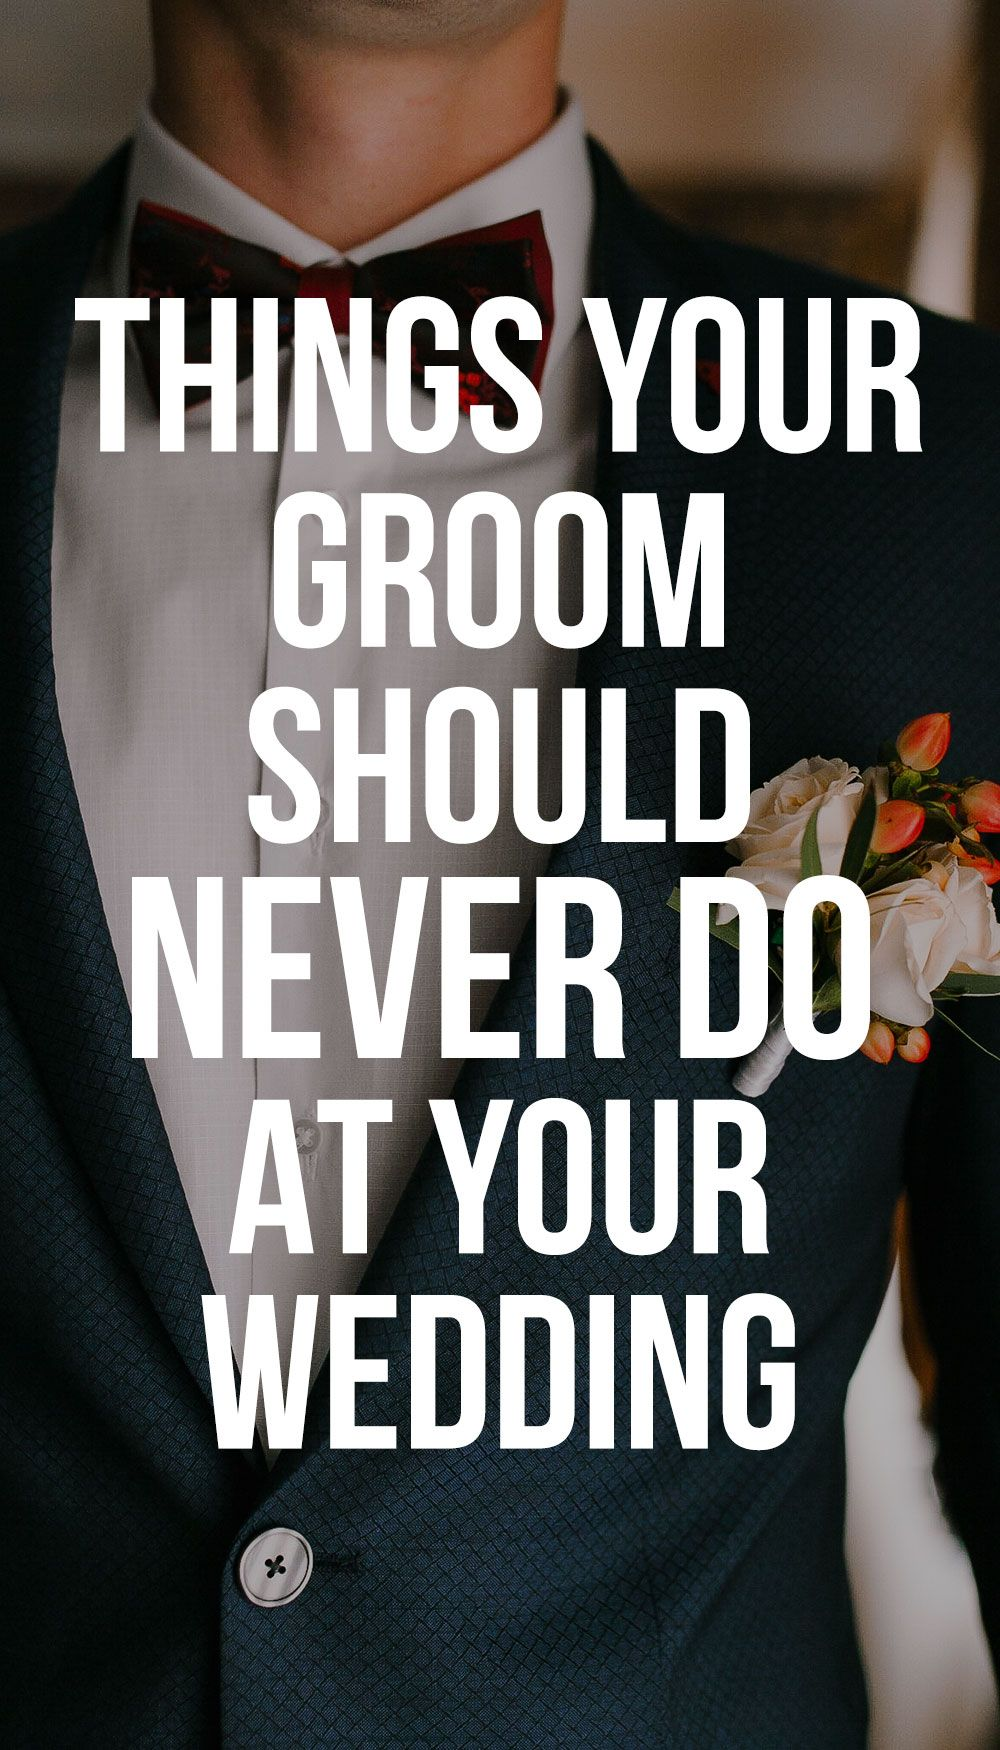 Grooms It S Your Special Day Too Make Sure You Don T Ruin Your Own W Native American Wedding Traditions Surprise Wedding Wedding Ceremony Decorations Outdoor